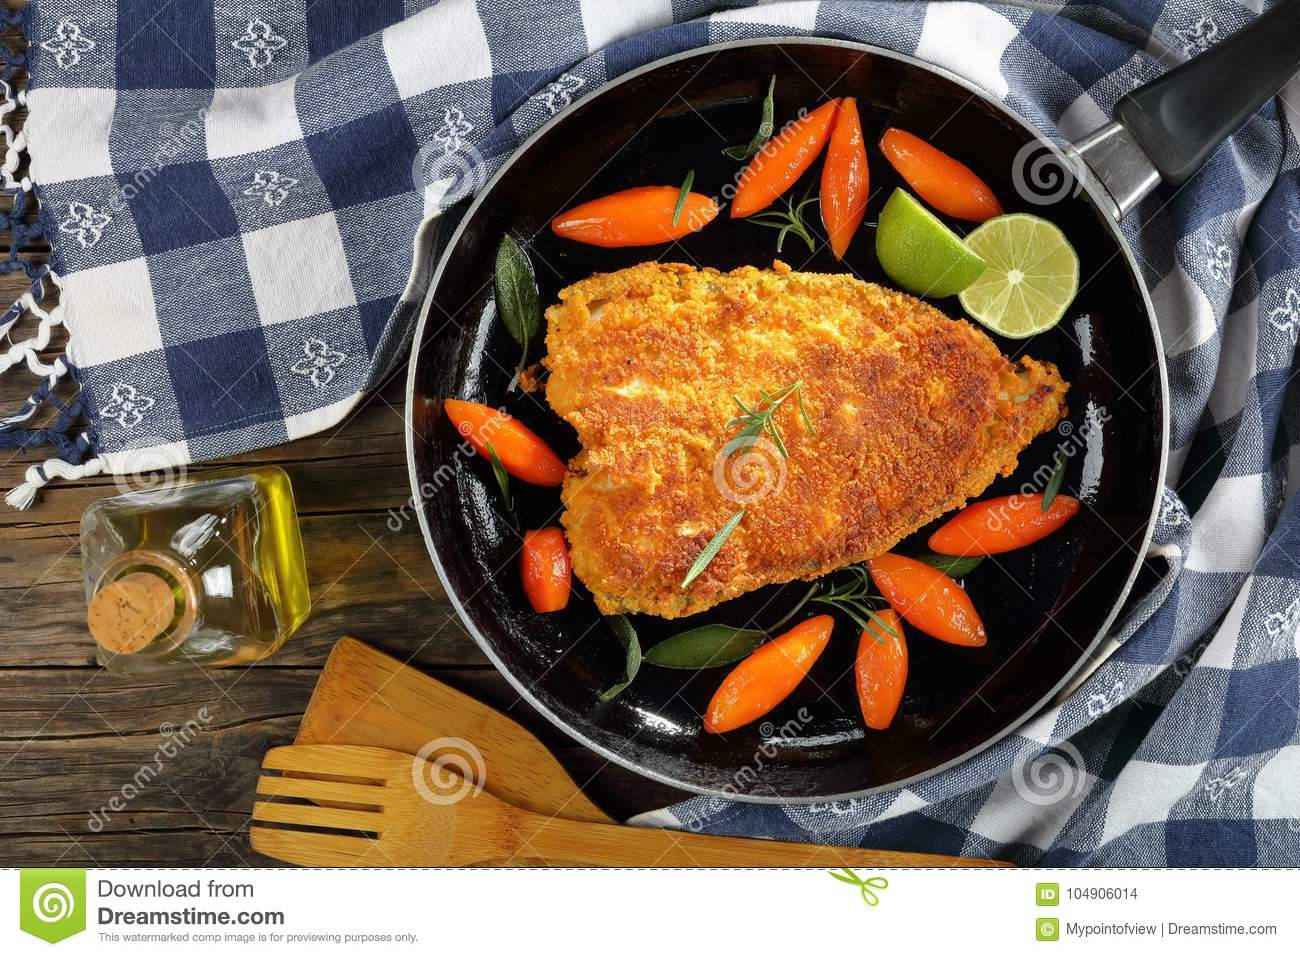 White Fish Steak With Glazed Carrots Stock Photo - Image of